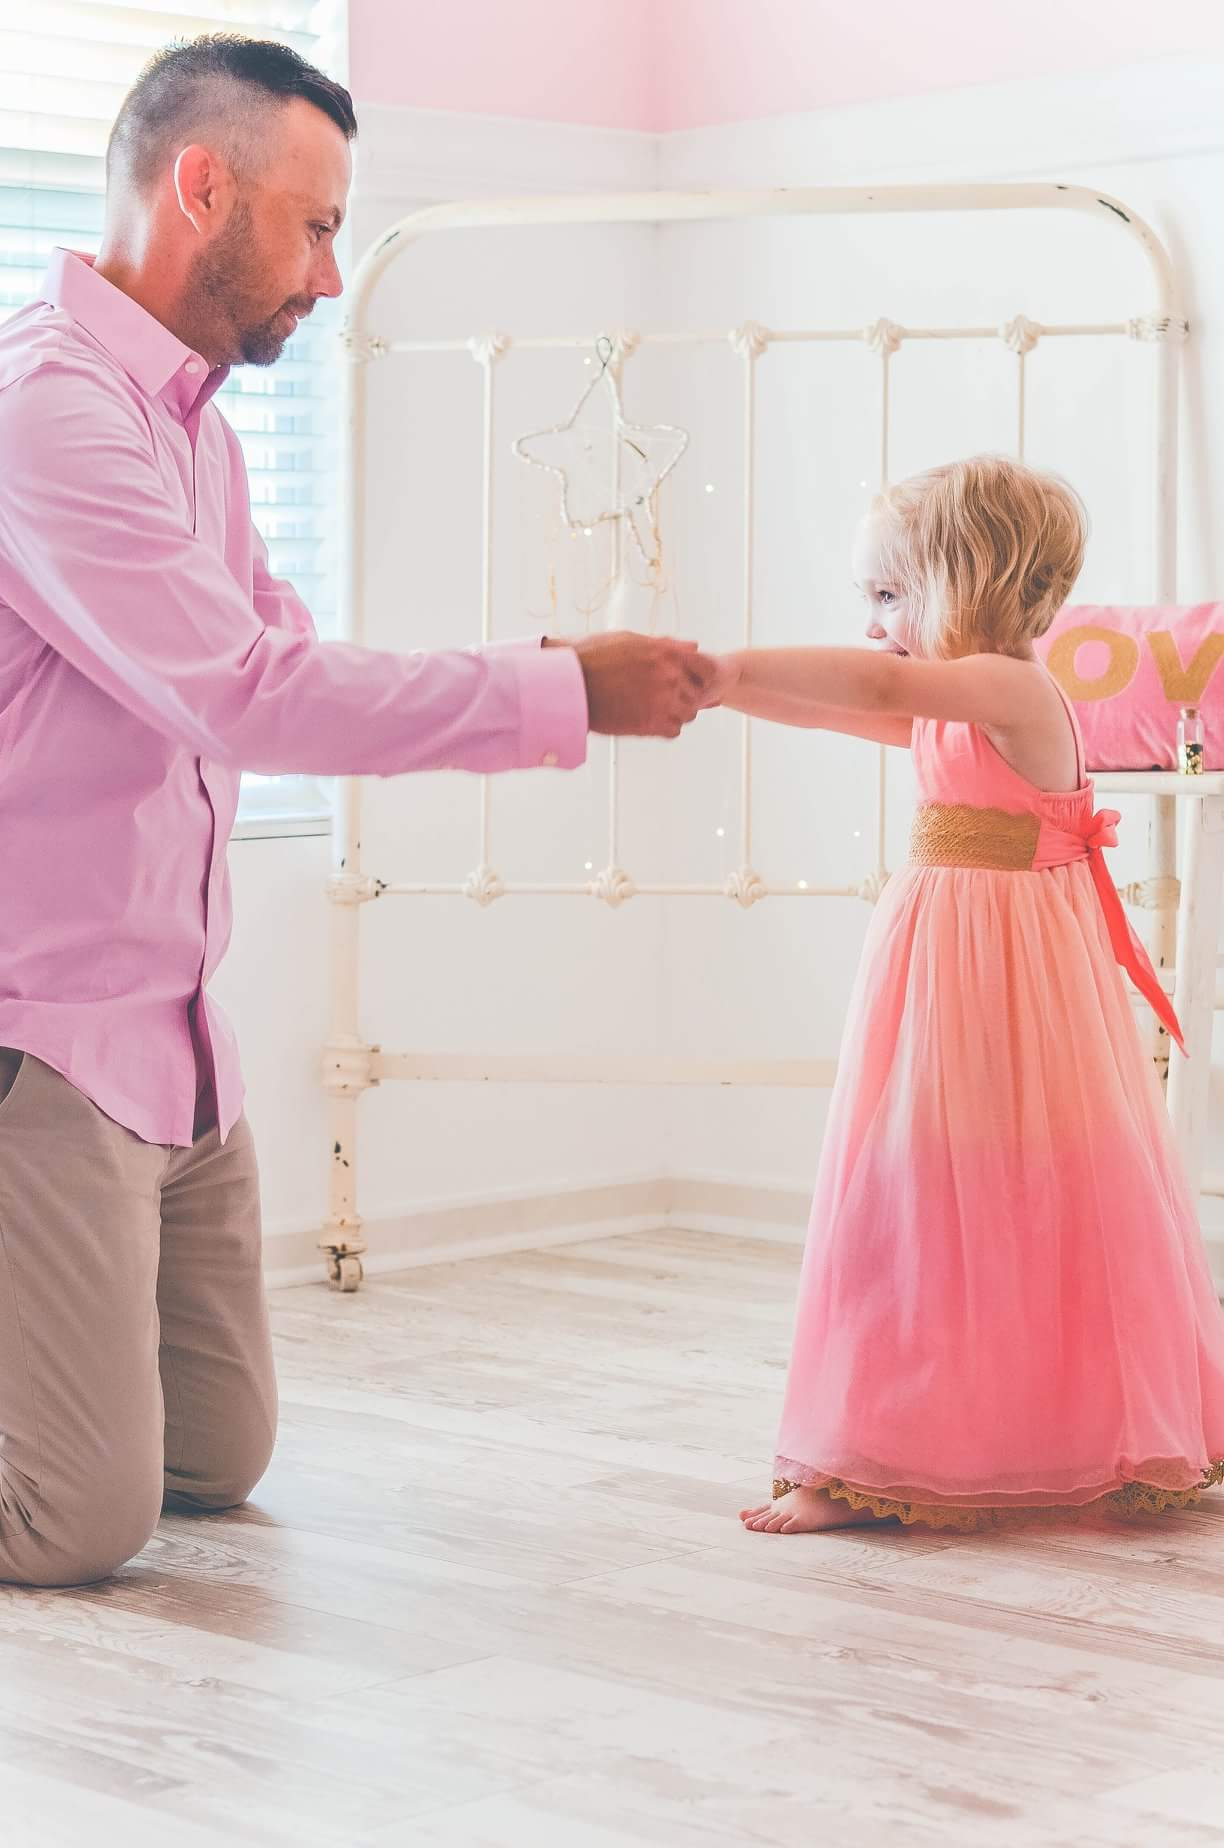 daddy daughter dance  magic childhood little ladies princesstwinkle twinkle gold star dreamcatcher dream catcher dreamer boho bohemian sparkle glitter lsdreams l.s dreams